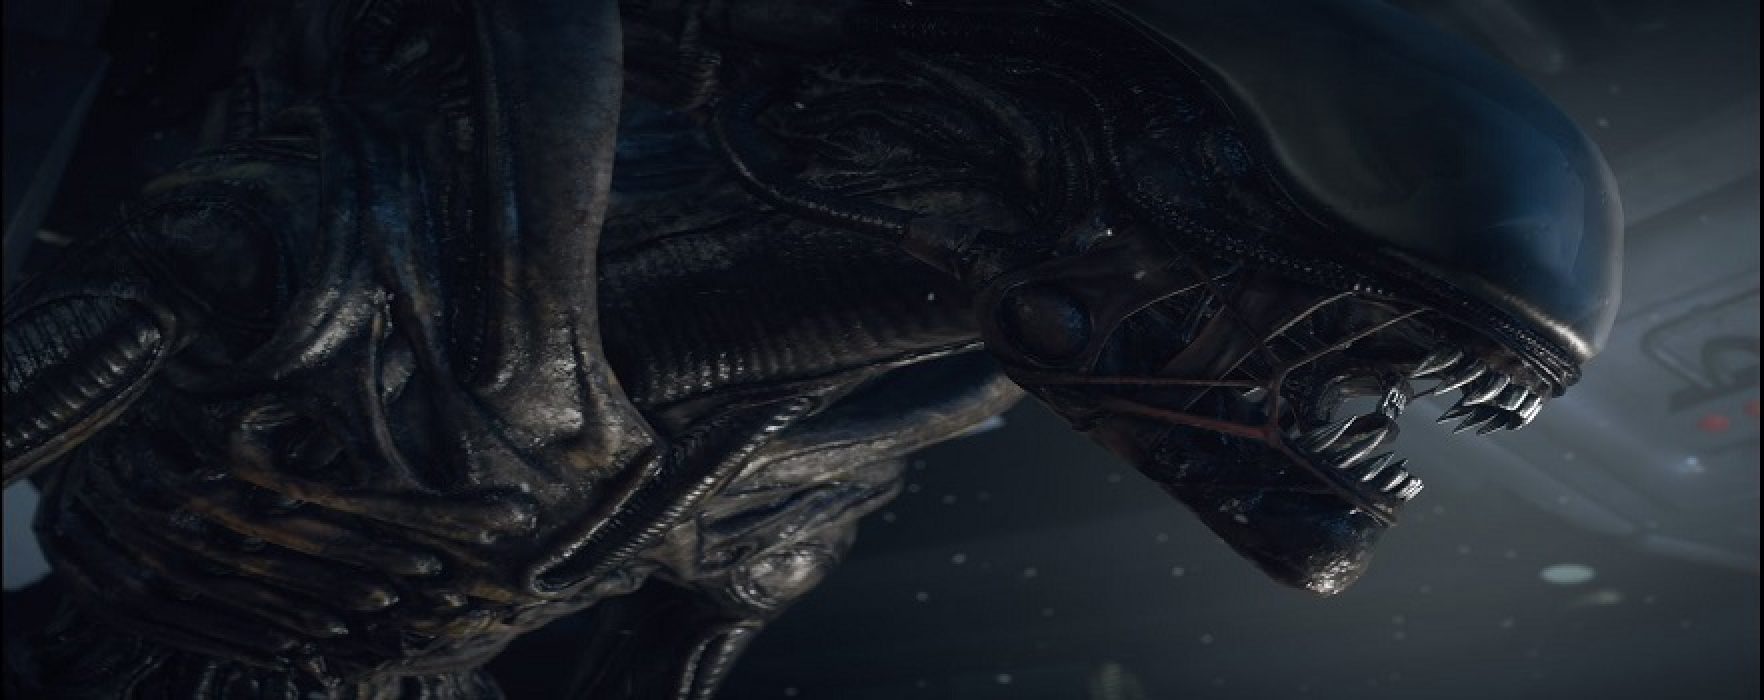 Alien Celebrates 40th Anniversary with New Documentary